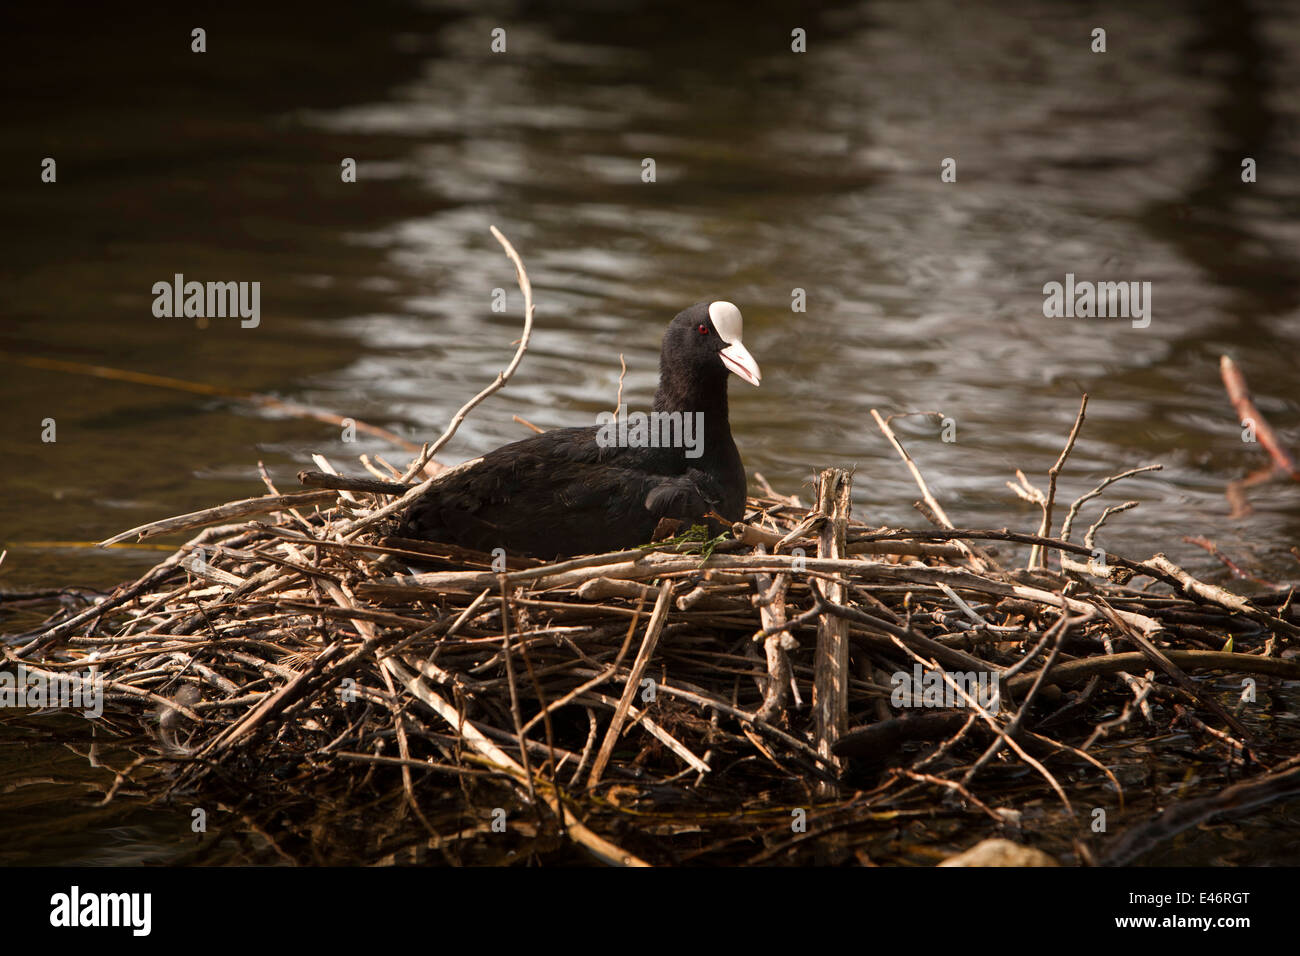 UK, Derbyshire, Peak District, Bakewell, wildlife, coot nesting in shallows of River Wye Stock Photo